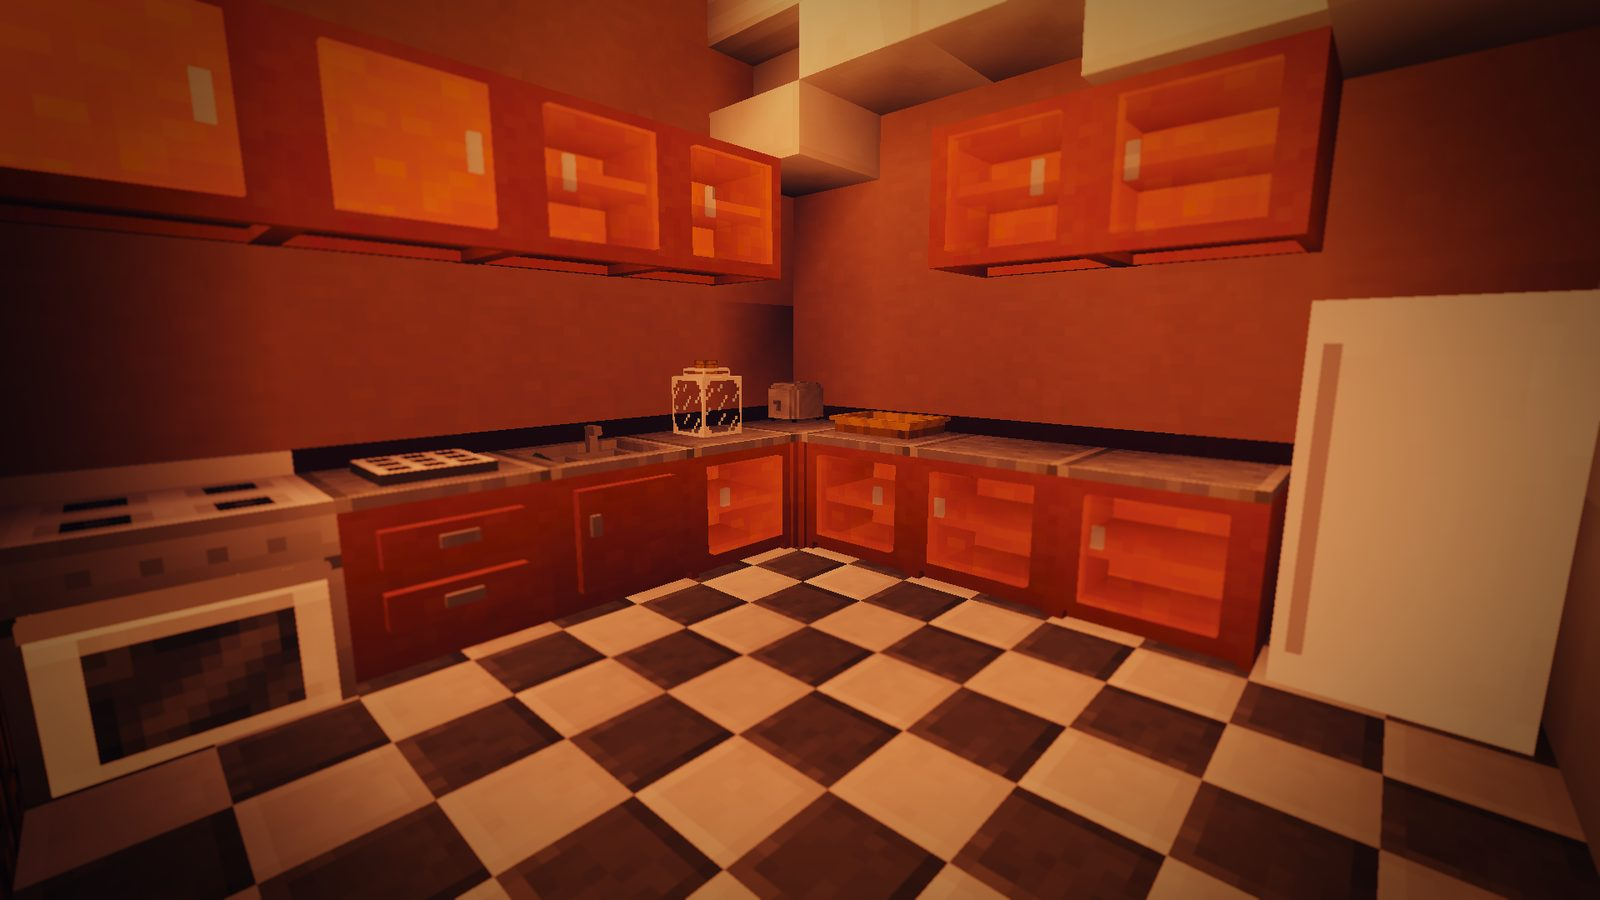 Minecraft Kitchen Mod 1.12.2 Cooking For Blockheads Mod For Minecraft 1 12 2